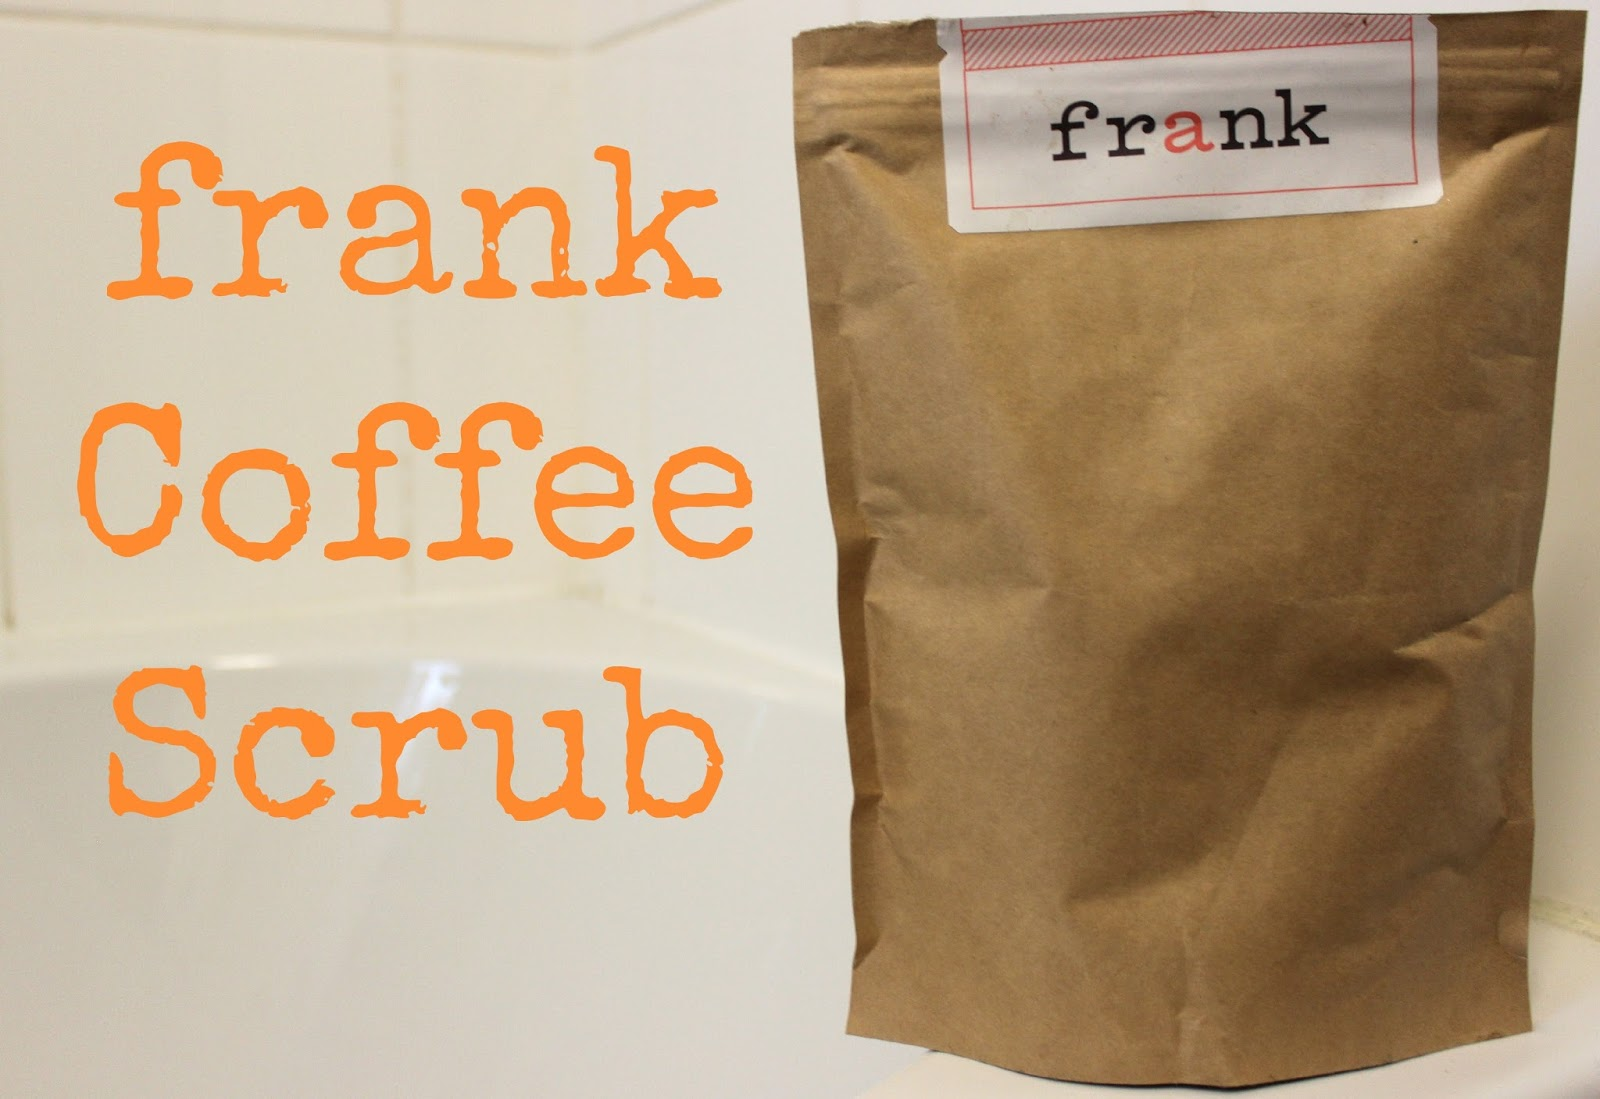 A picture of frank Original Coffee Scrub